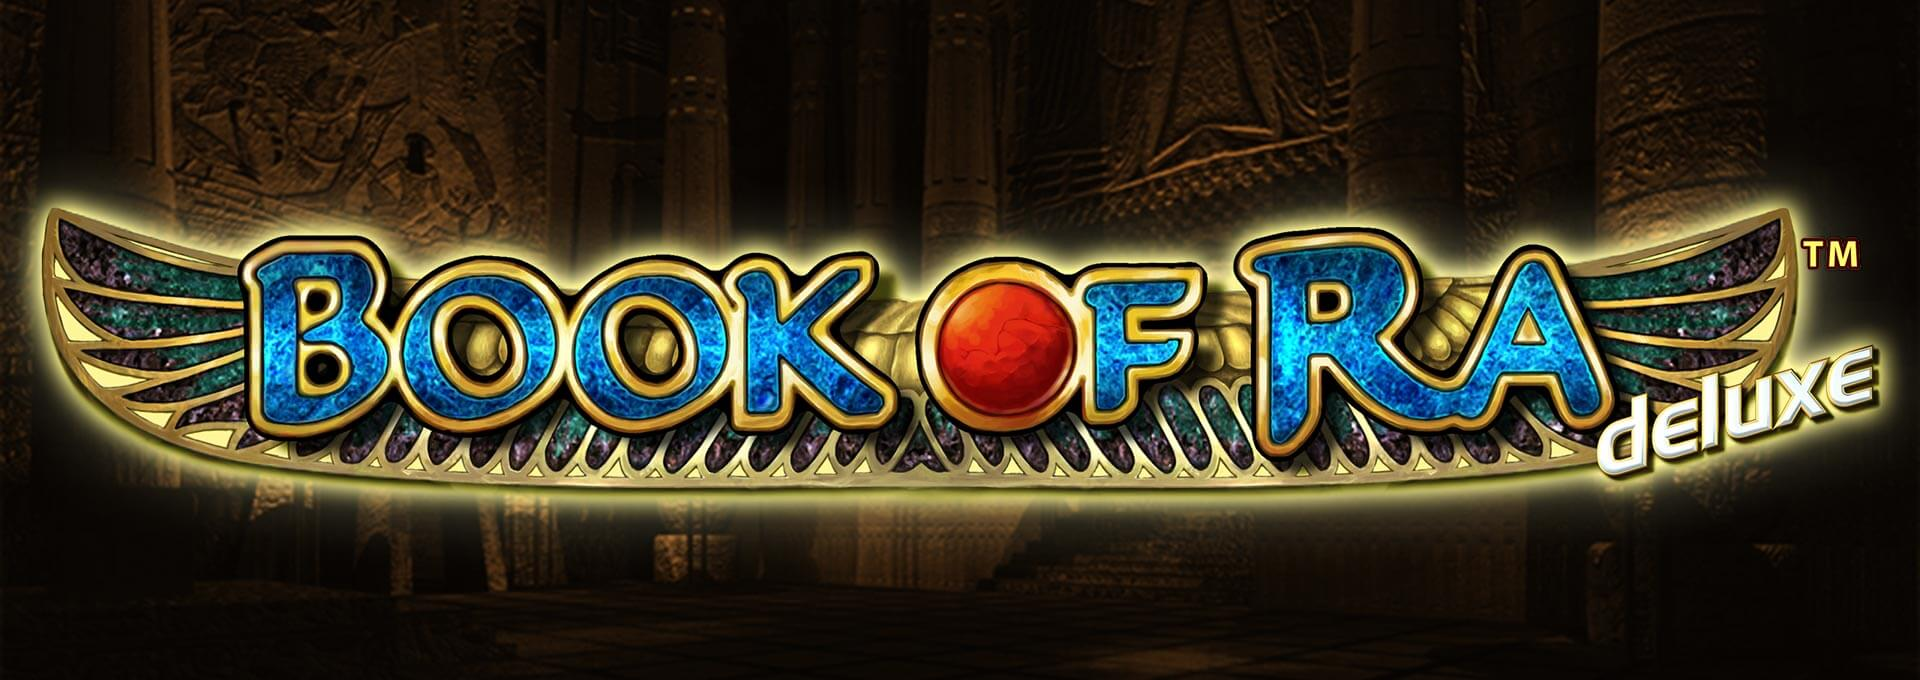 casino slots online free play book of ra 2 euro